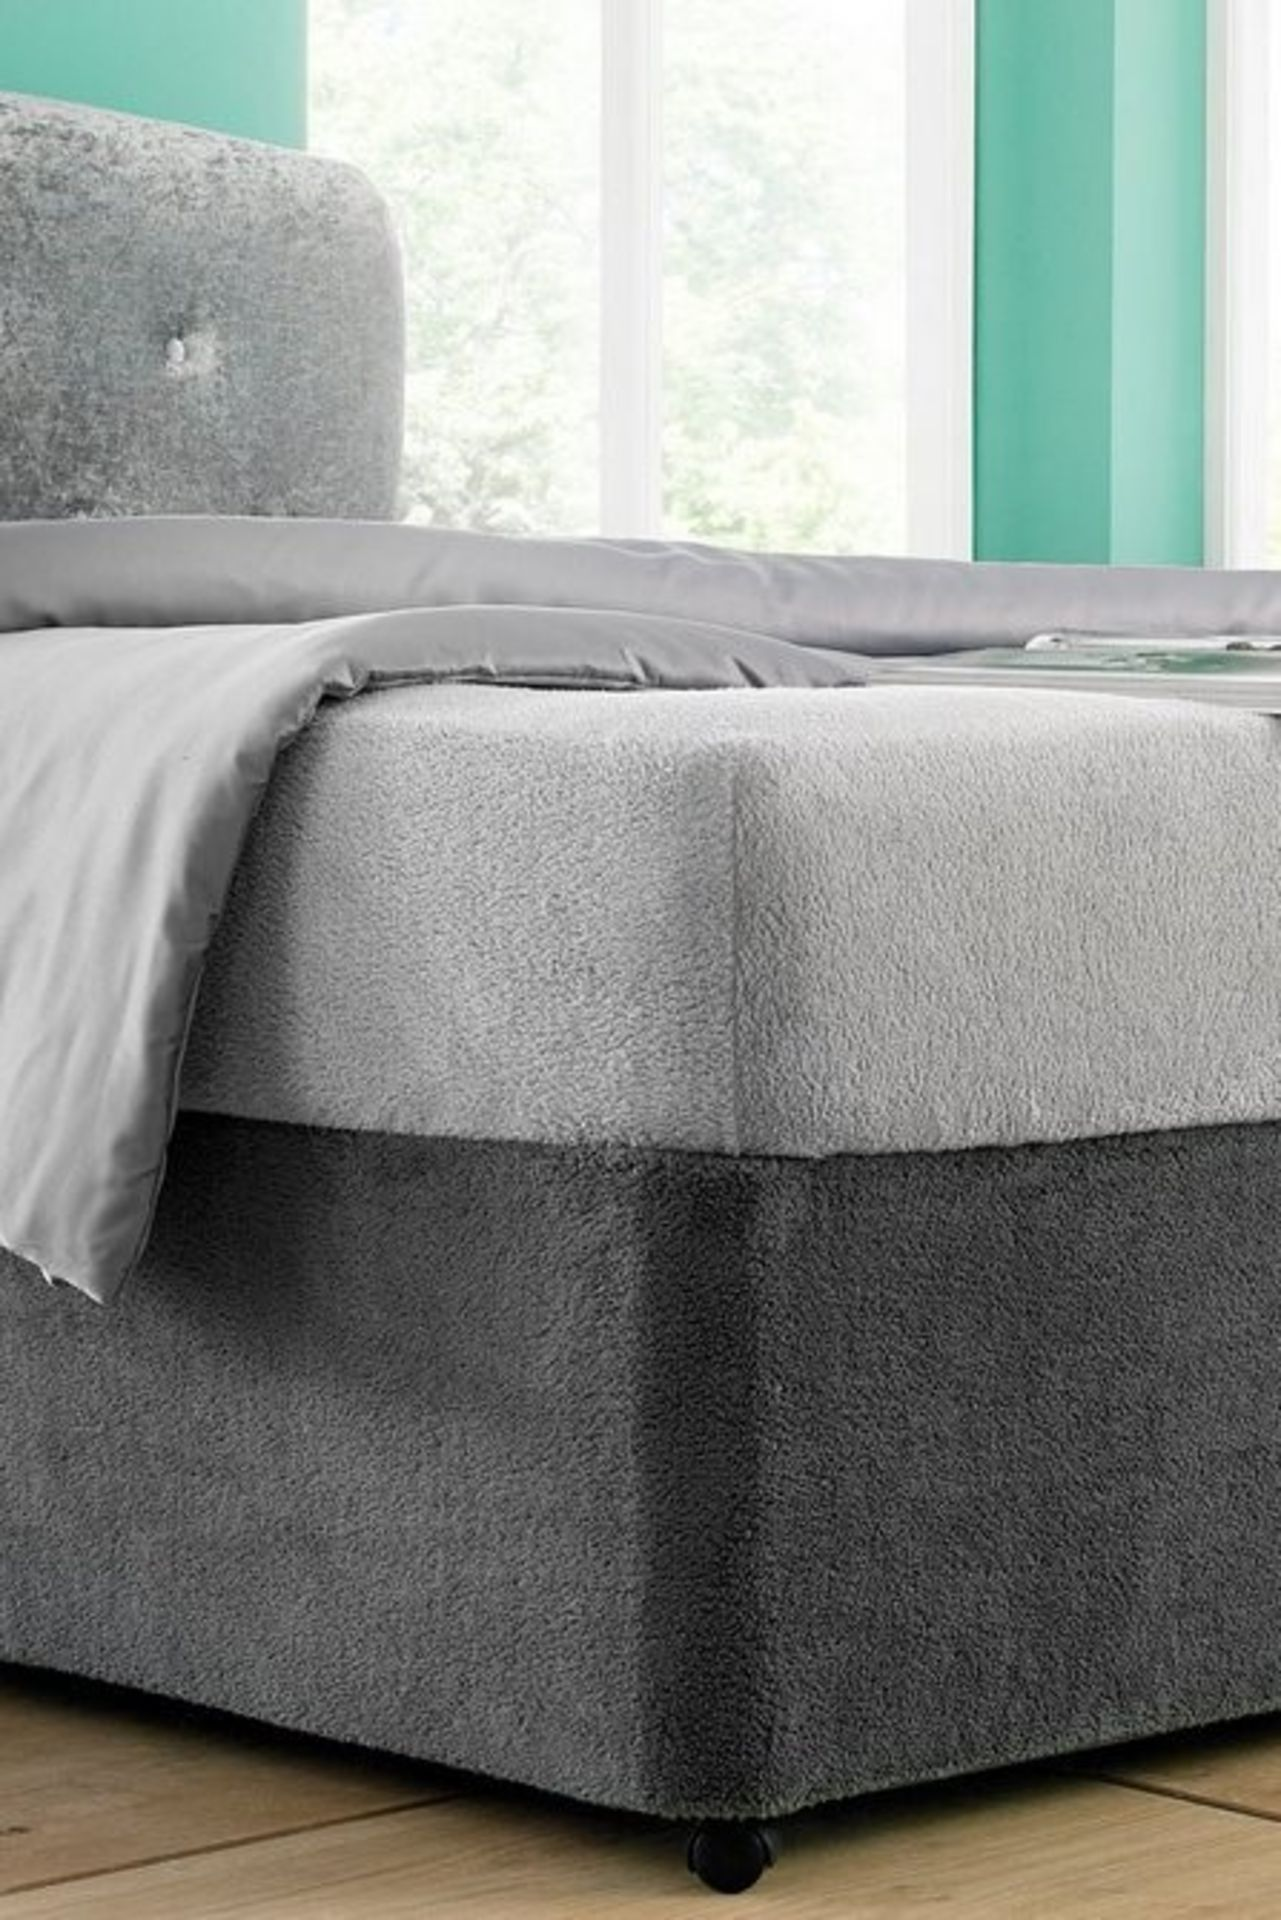 Lot 38 - 1 BAGGED KING SIZE ULTRA COSY BASE WRAP IN CHARCOAL GREY (PUBLIC VIEWING AVAILABLE)